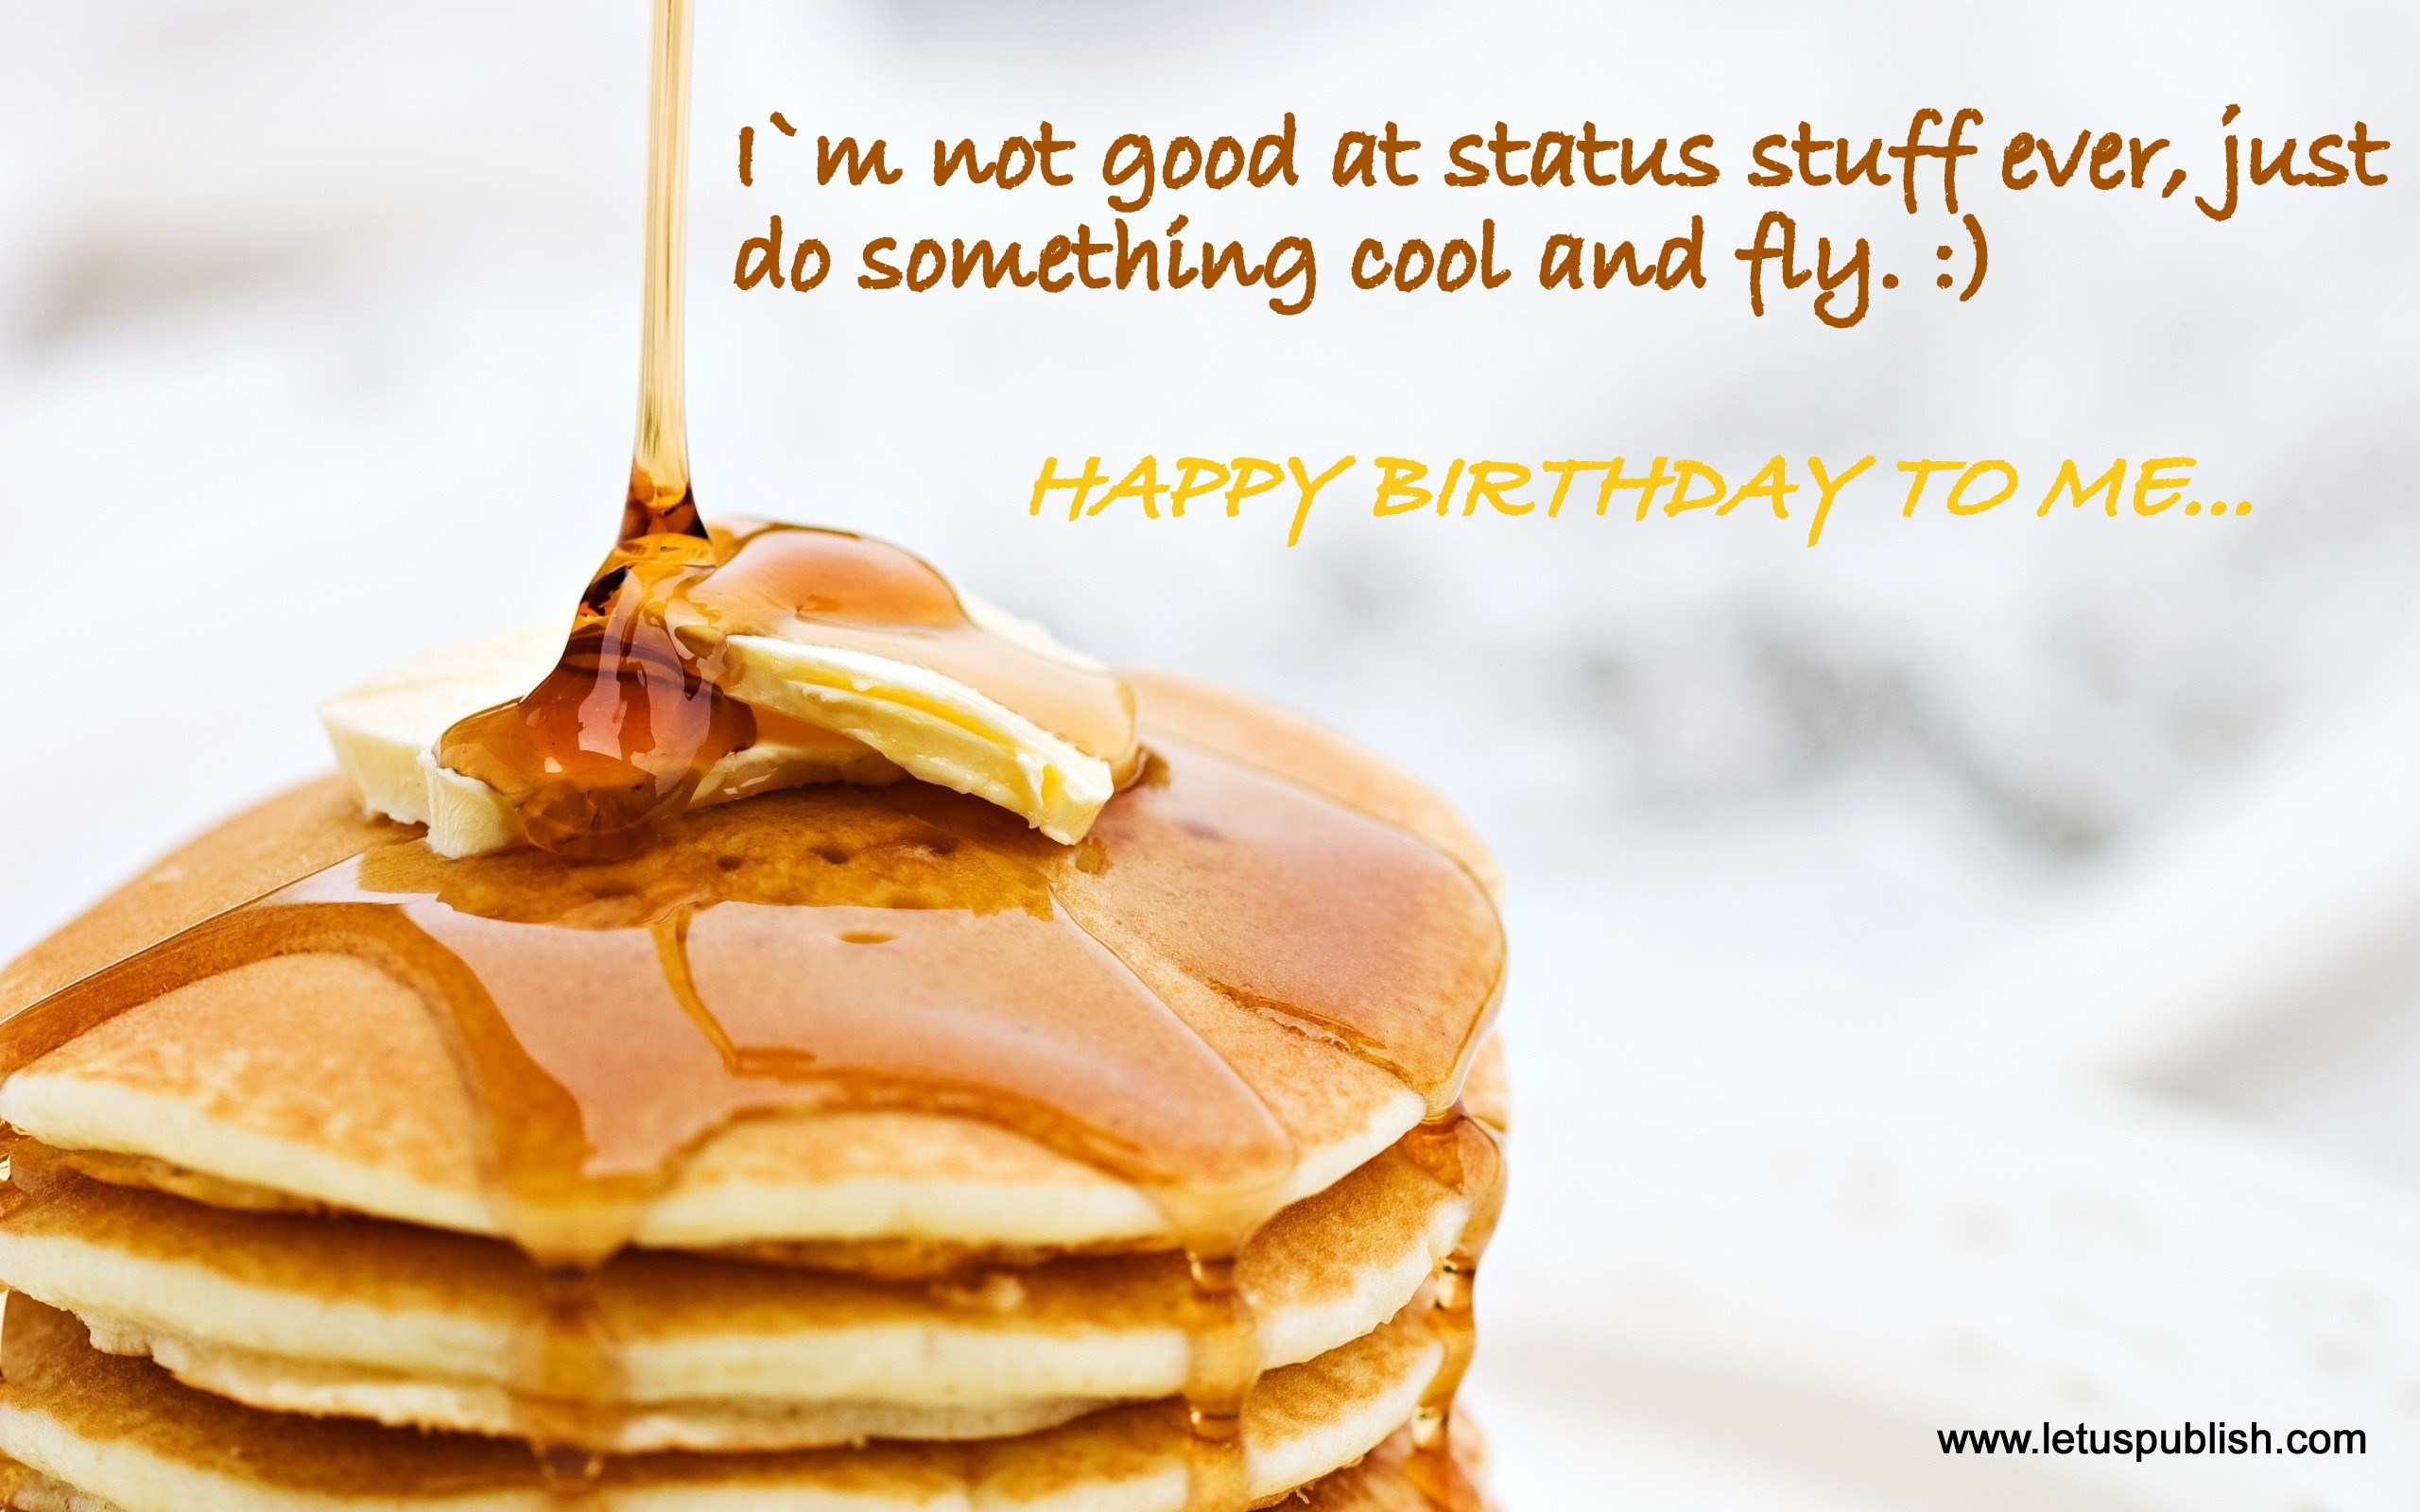 Happy birthday to me memorable quotes